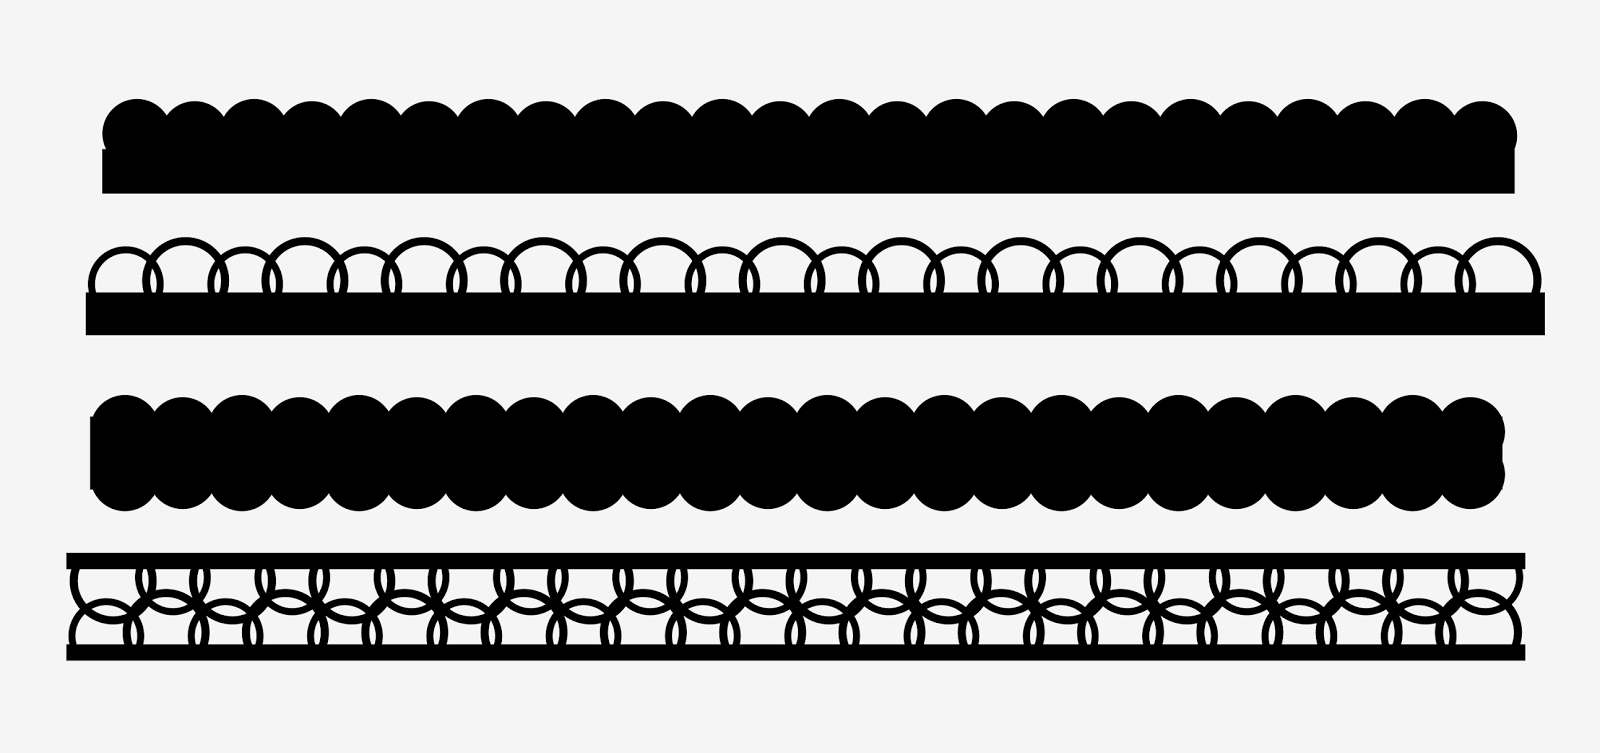 Free Scallop Border Svg For Scrapbooking